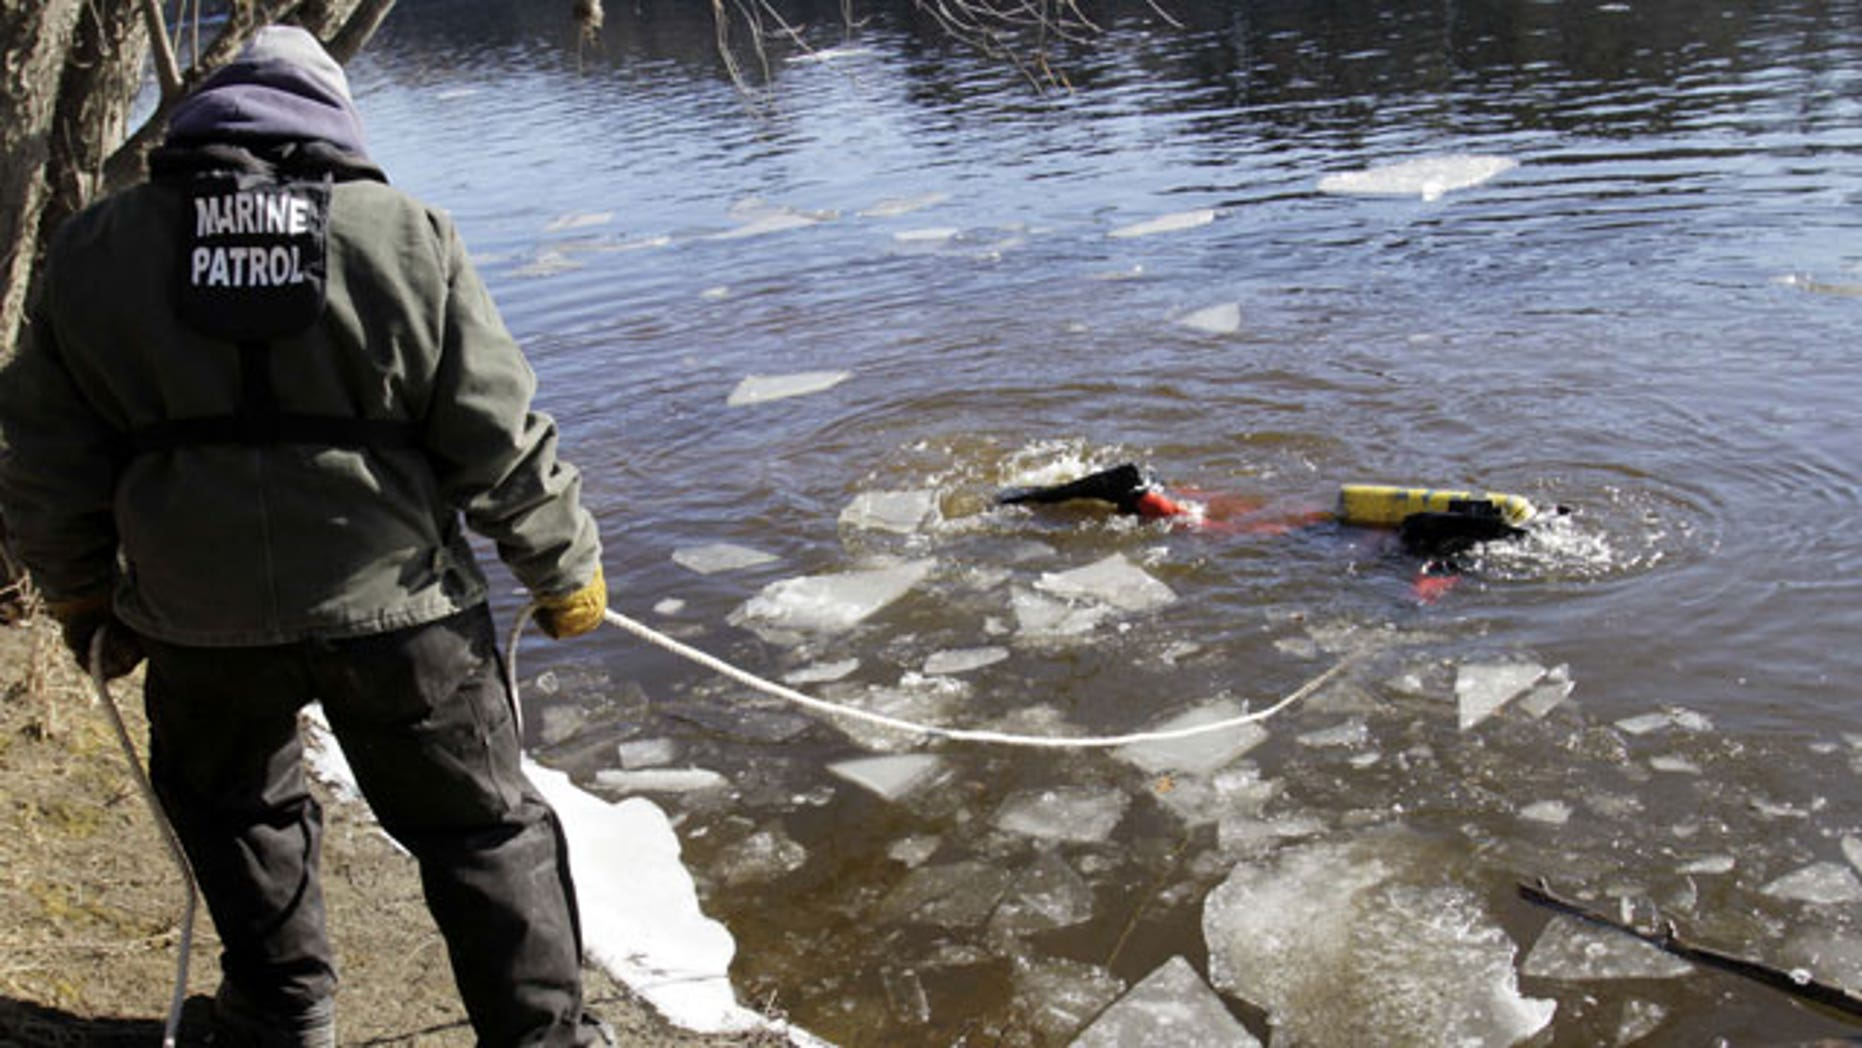 January 11, 2012: A diver maneuvers around sheets of ice as he searches the Kennebec River in Waterville, Maine for 20-month-old Ayla Reynolds who was reported missing since December.